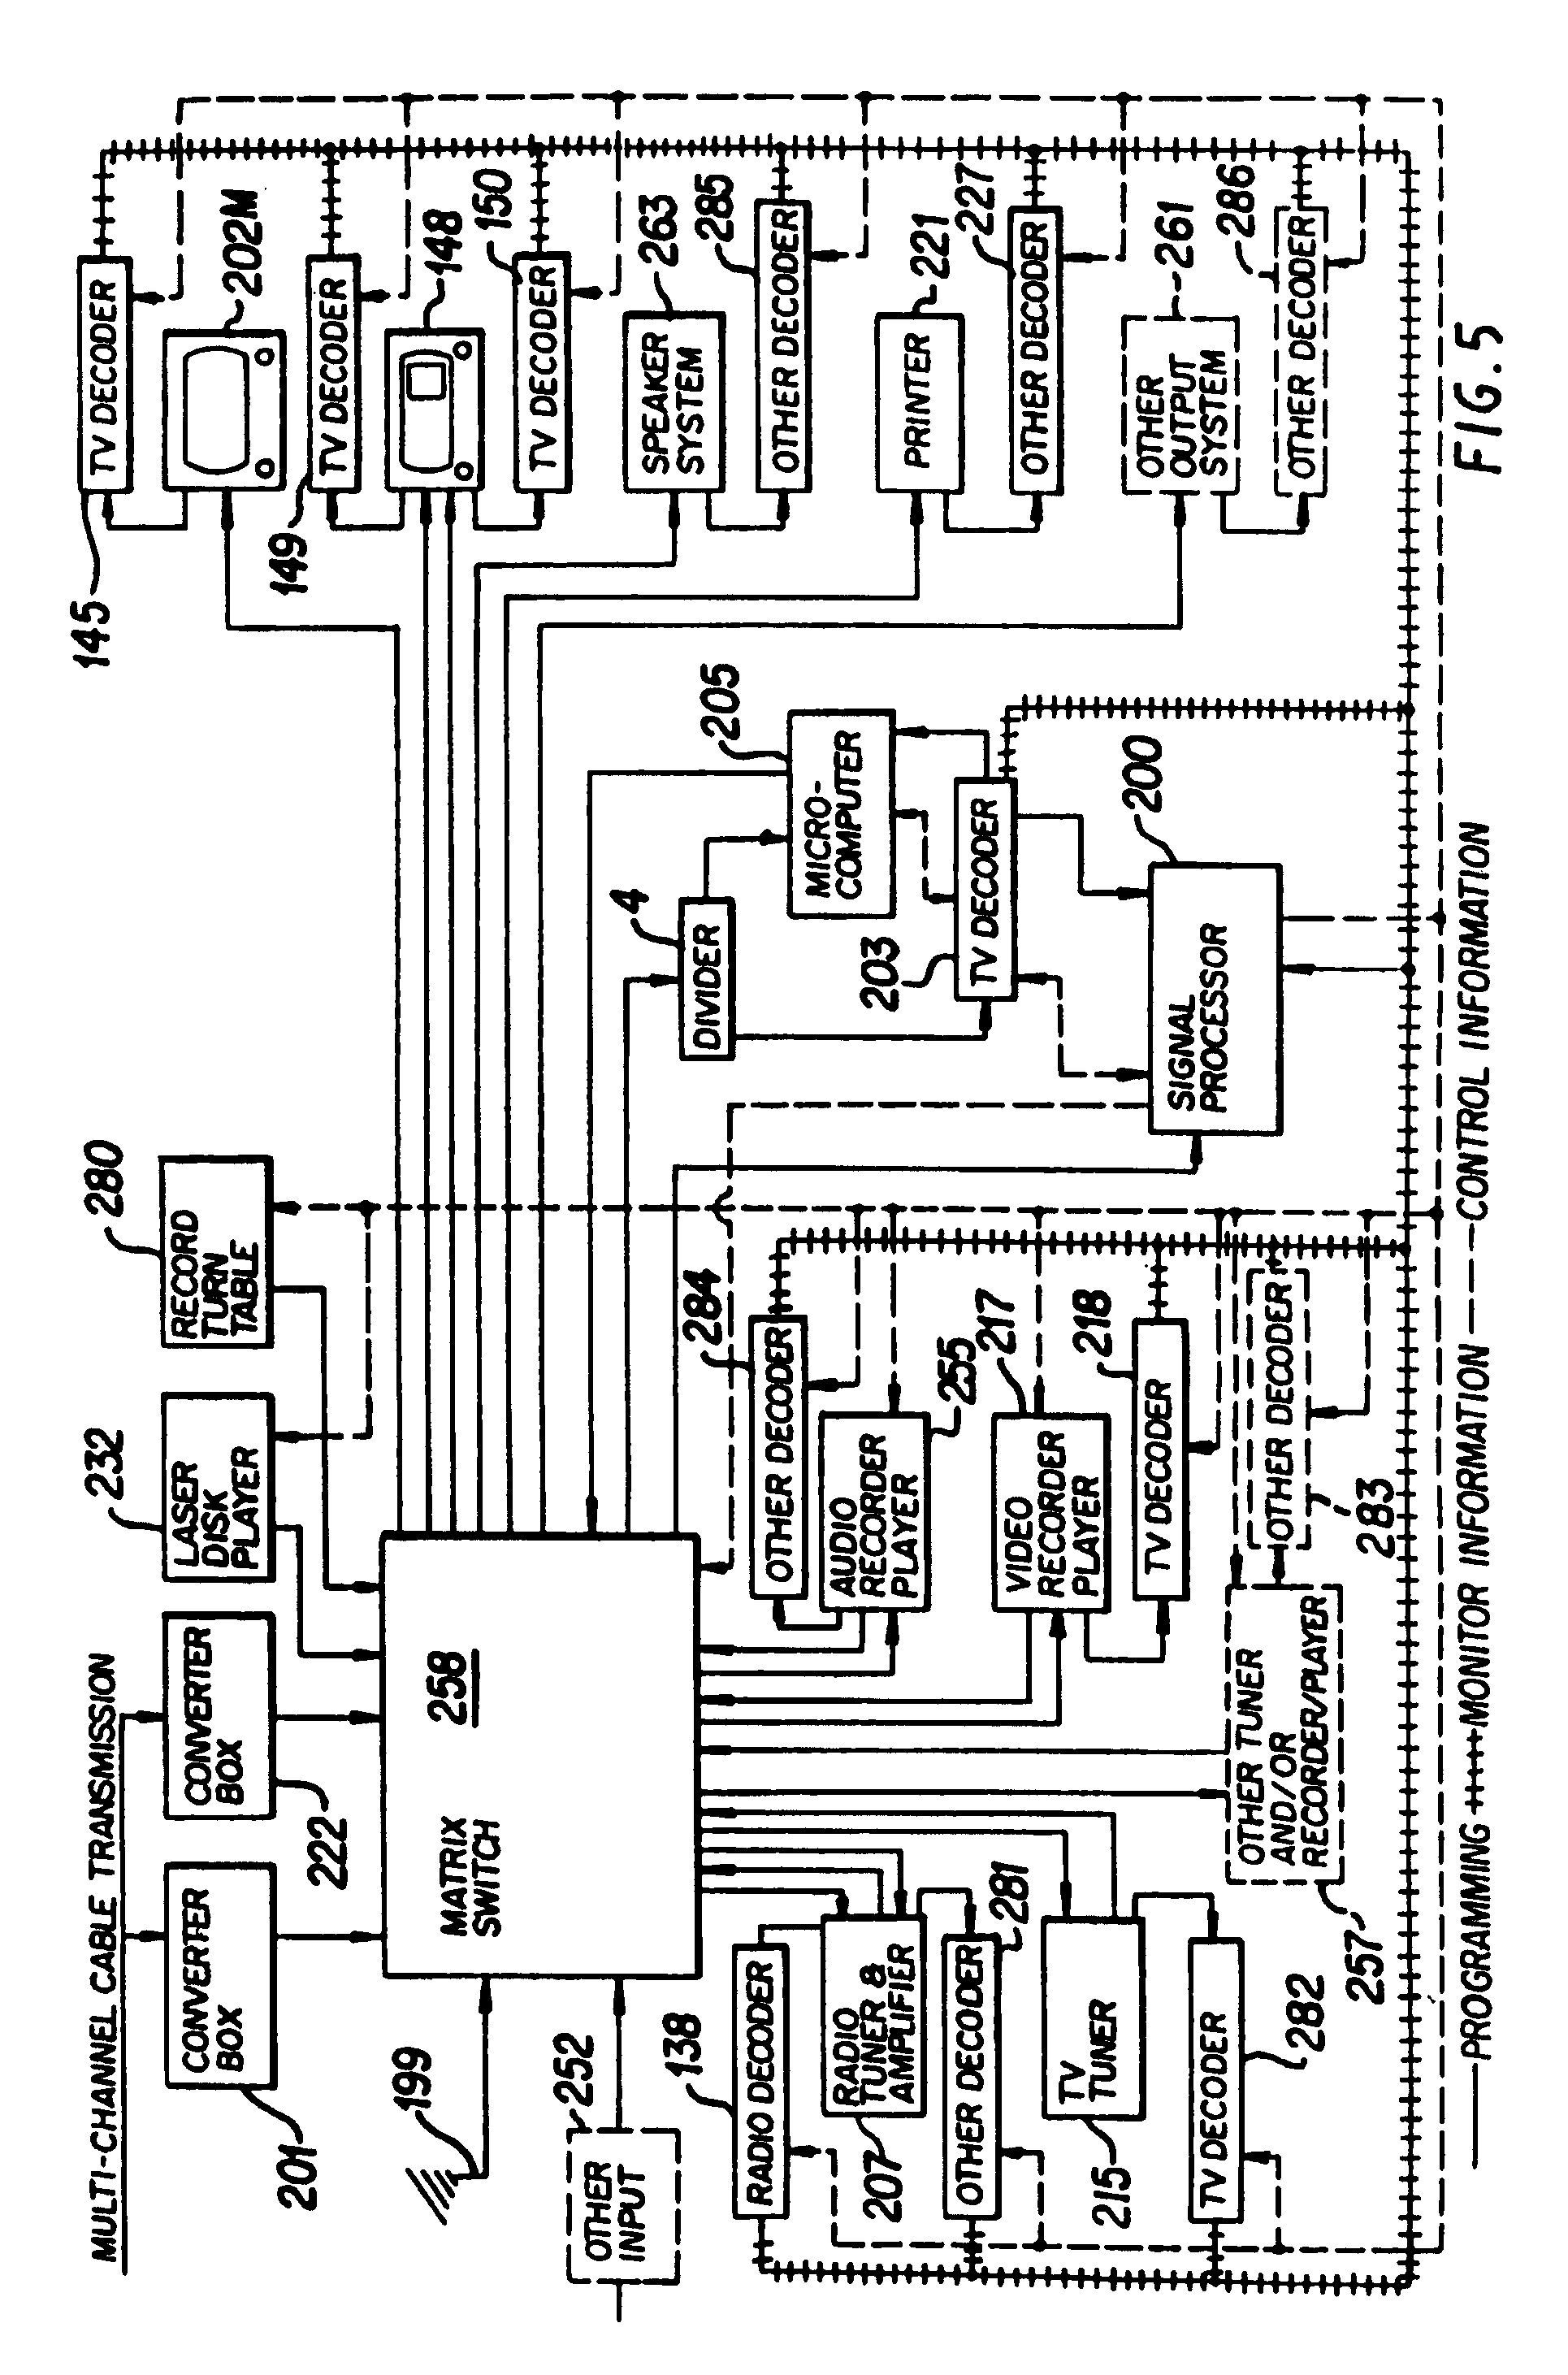 Us7793332b1 Signal Processing Apparatus And Methods Google Patents Scania 124 Wiring Diagram